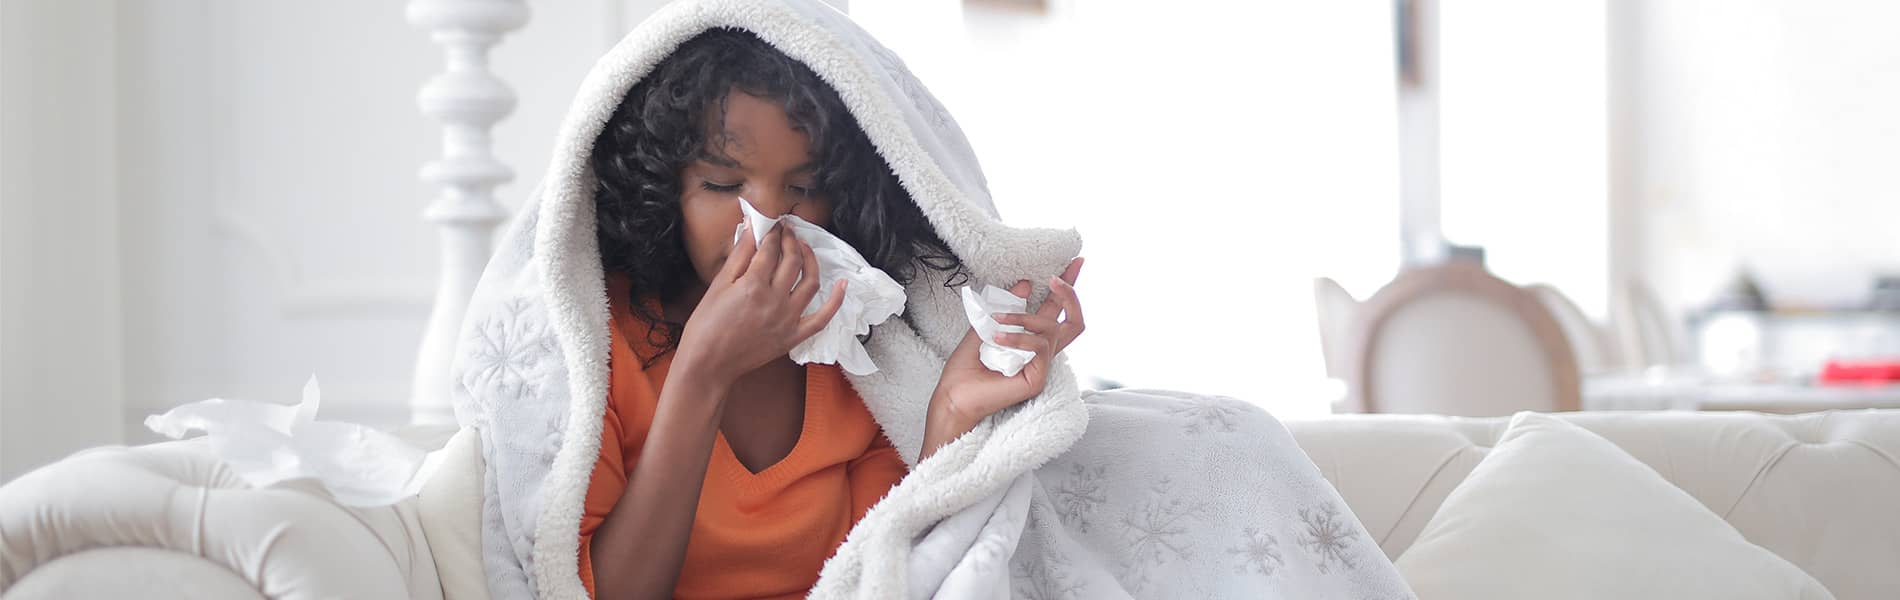 15+ Ways To Allergy Proof Your Home